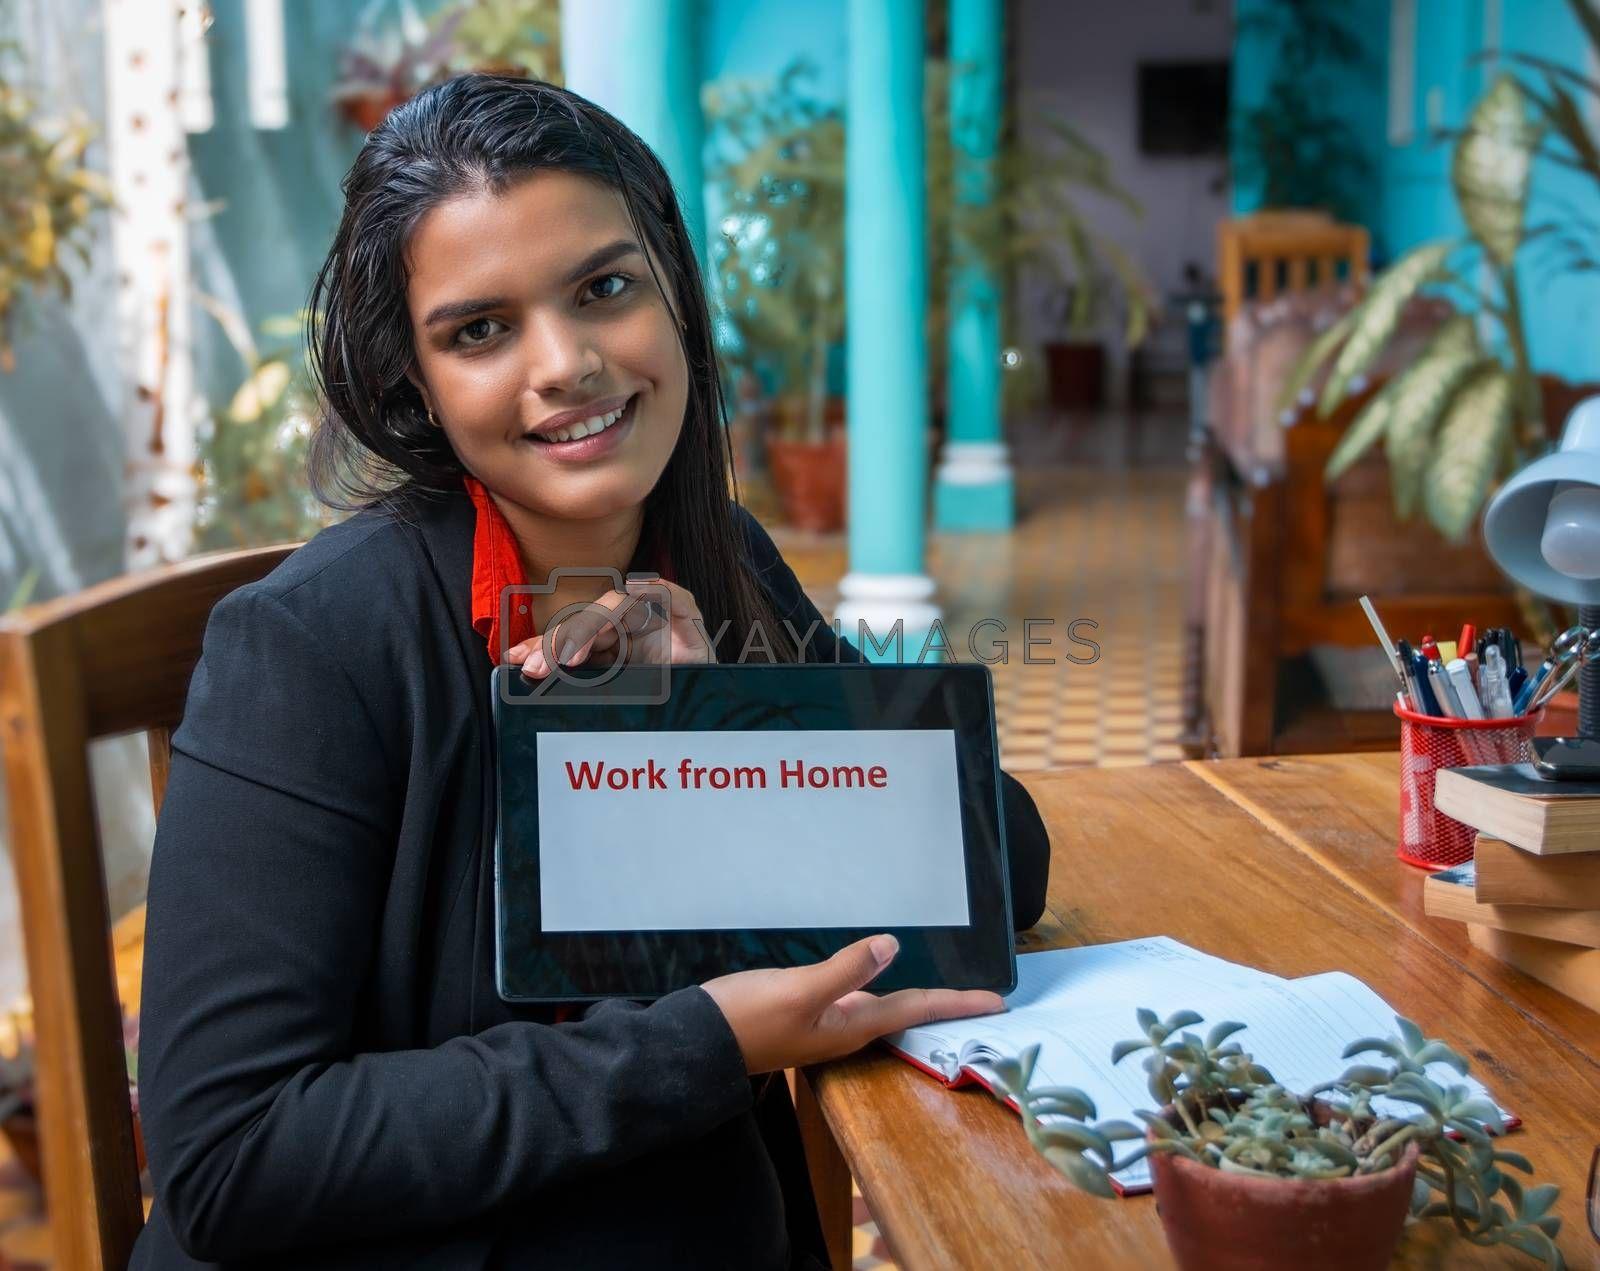 An smiling young woman sitting at a table with a tablet in her hands. On the tablet screen is written Work from home in red letters